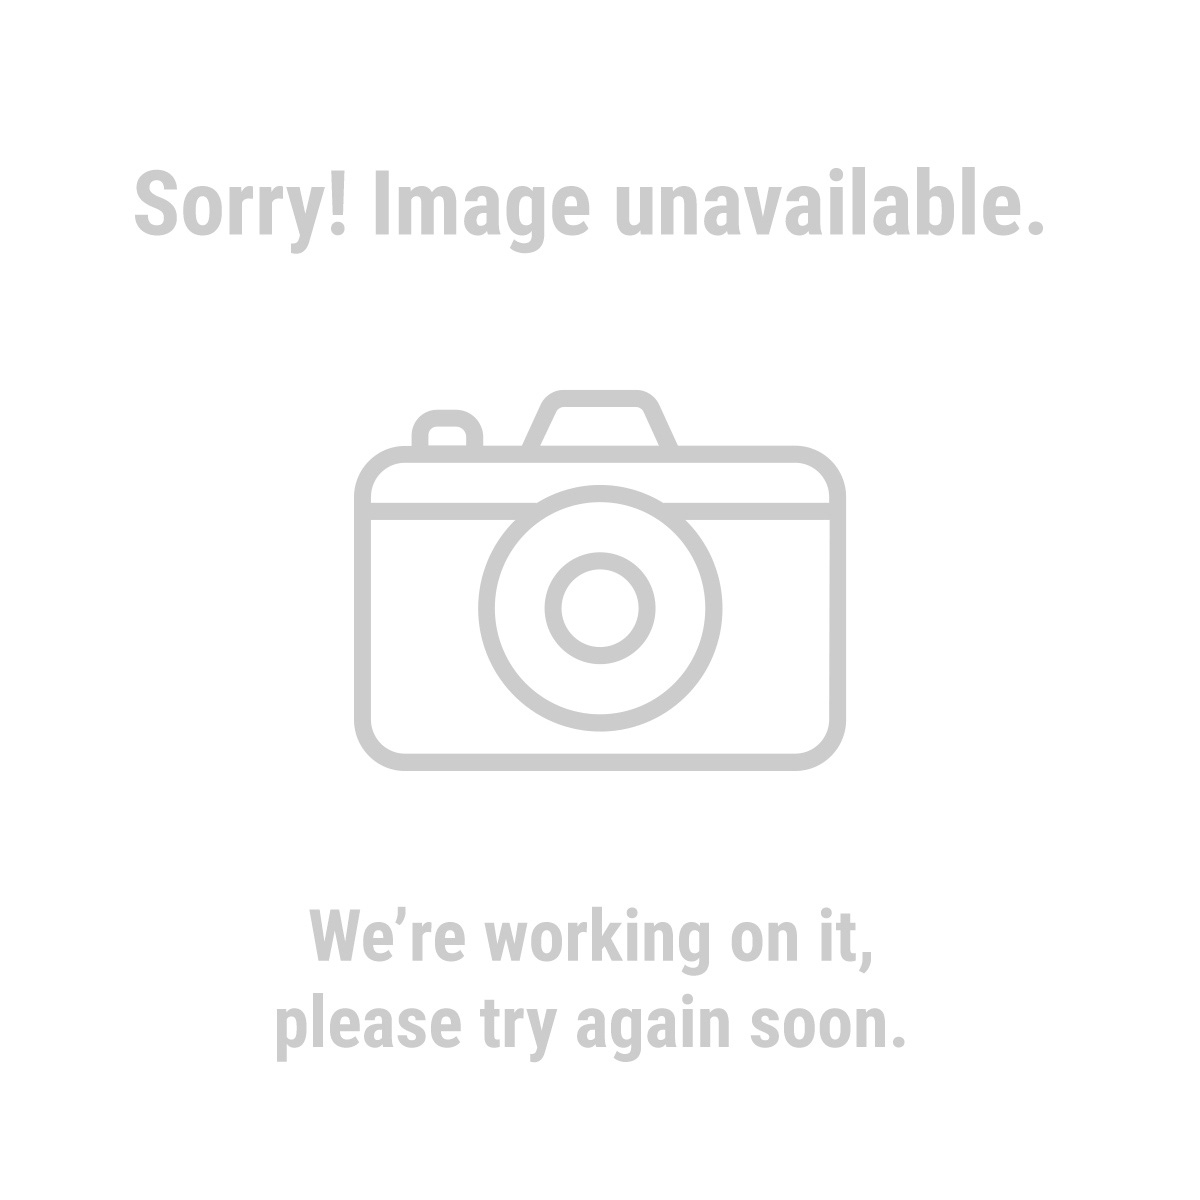 Bunker Hill Security® 69644 36 LED Solar Security Light